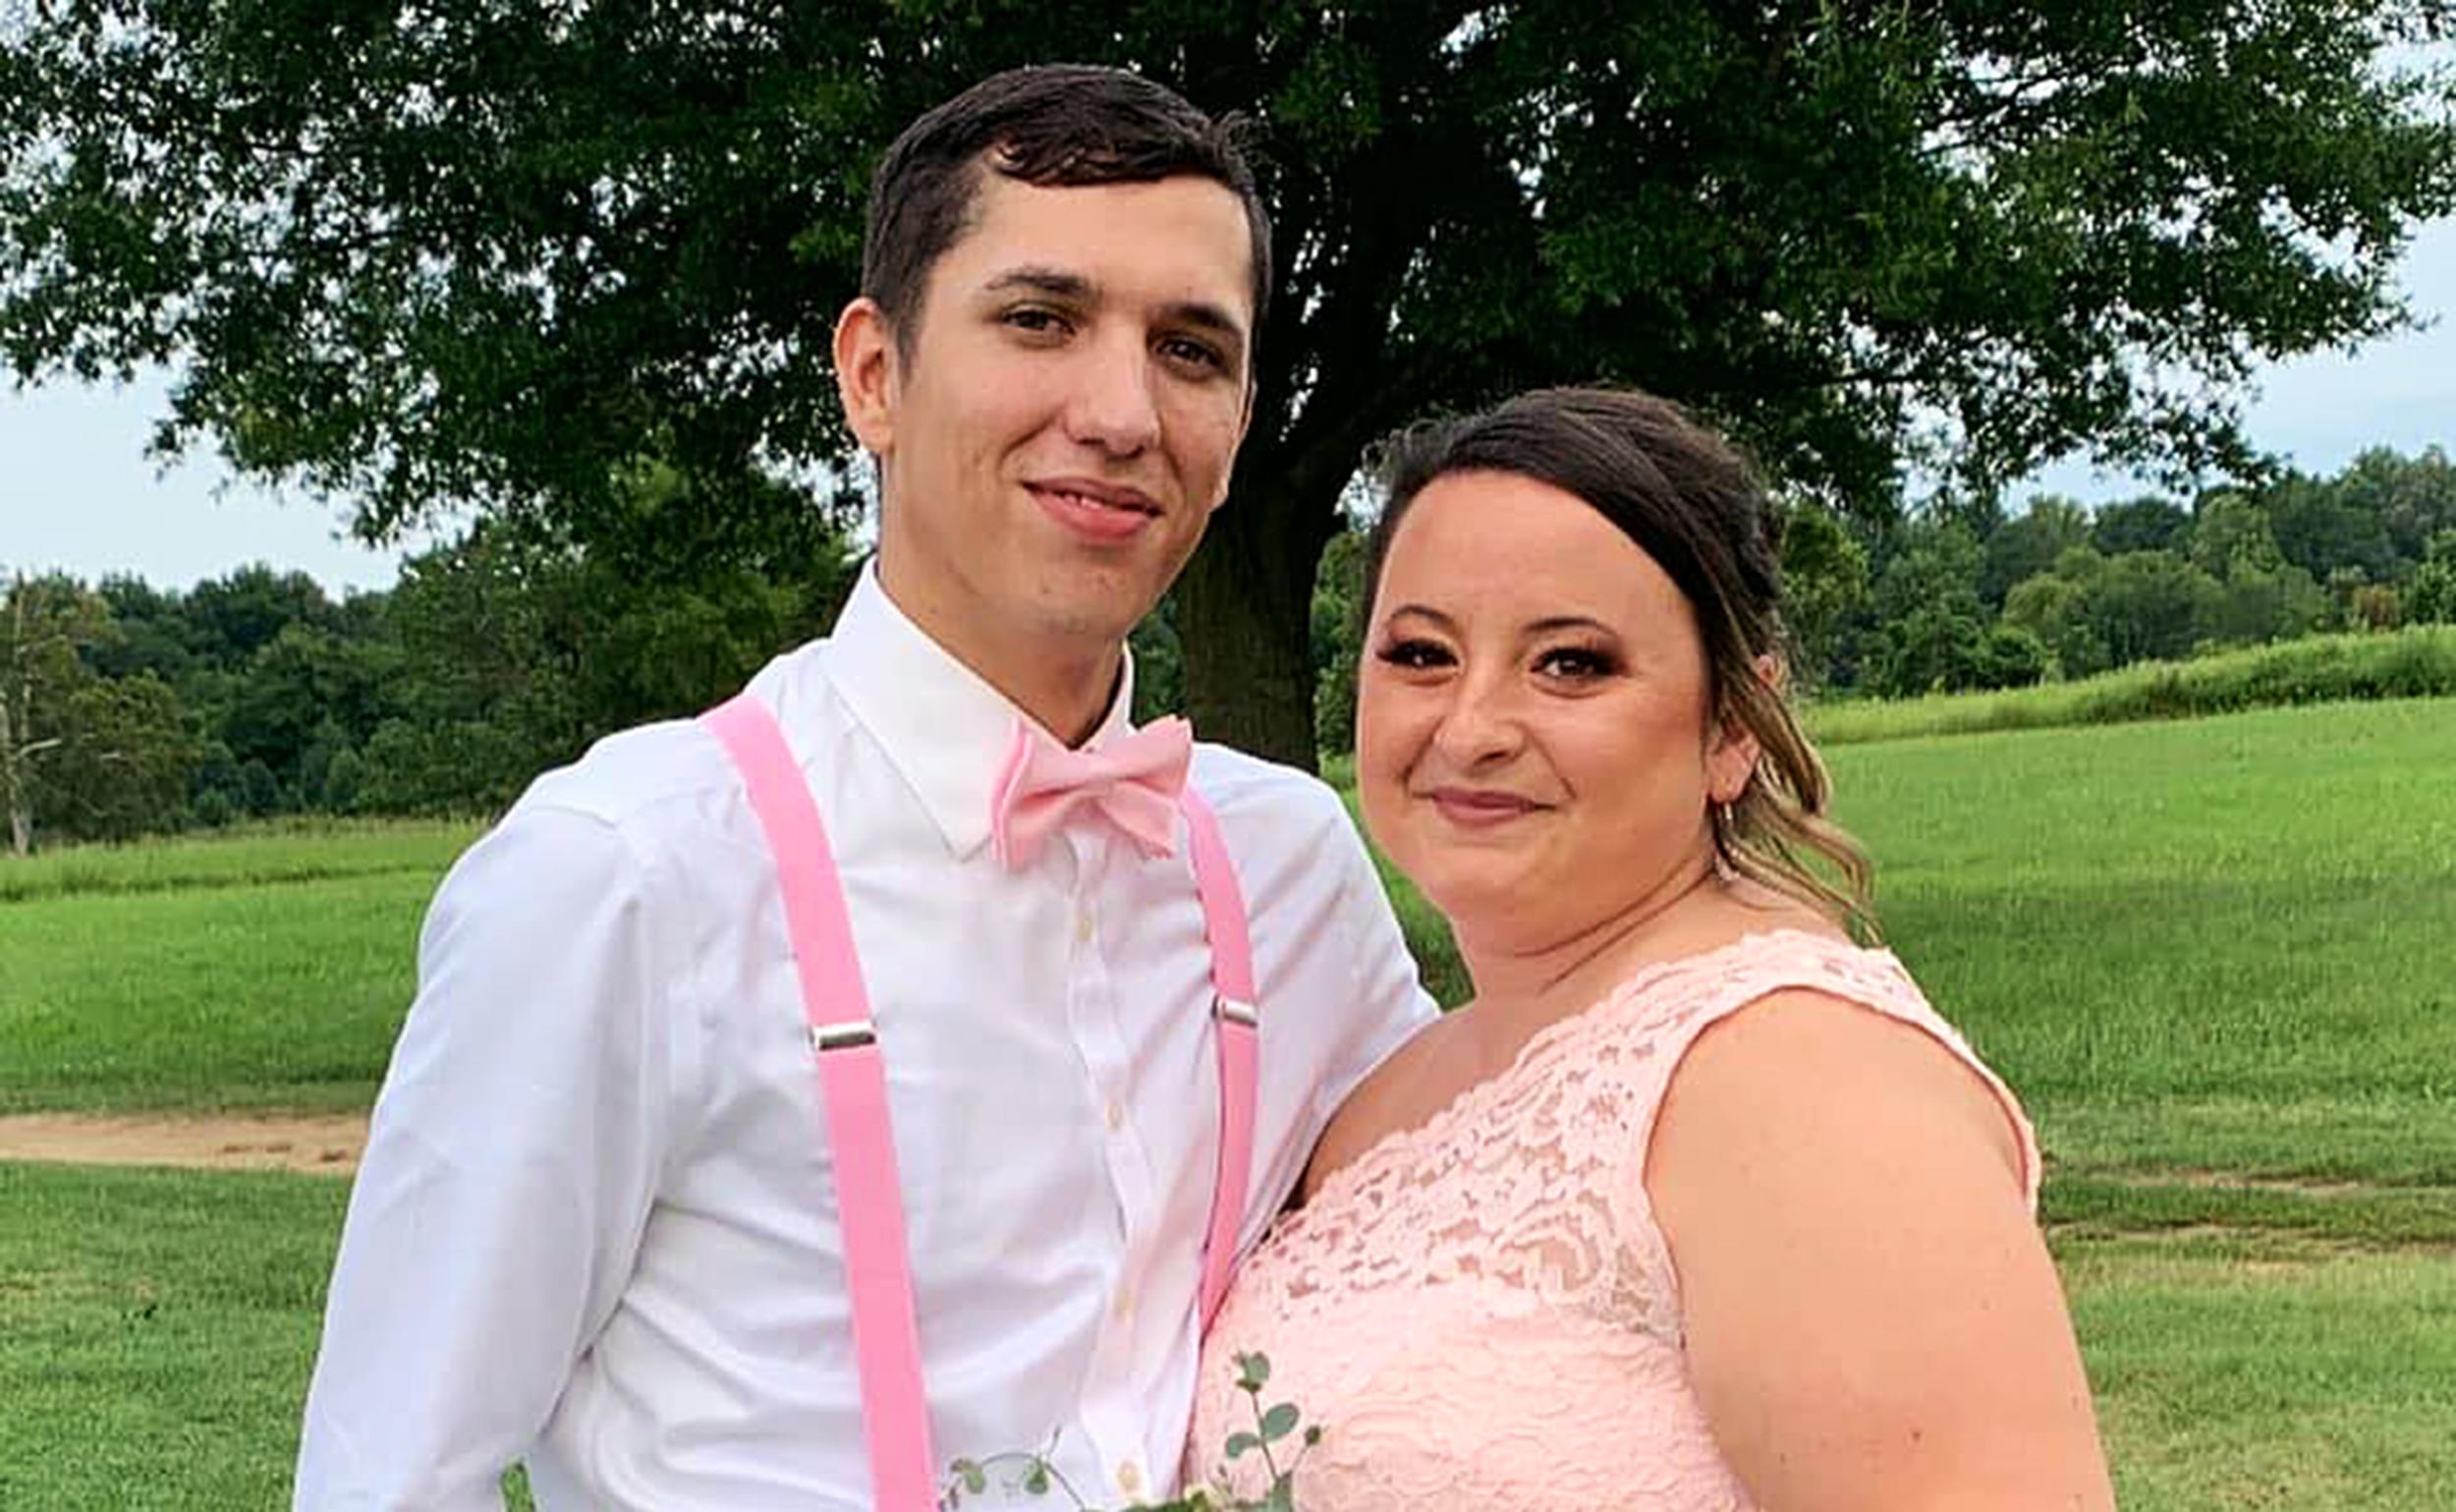 Kentucky bride-to-be who hesitated to get vaccinated dies of Covid